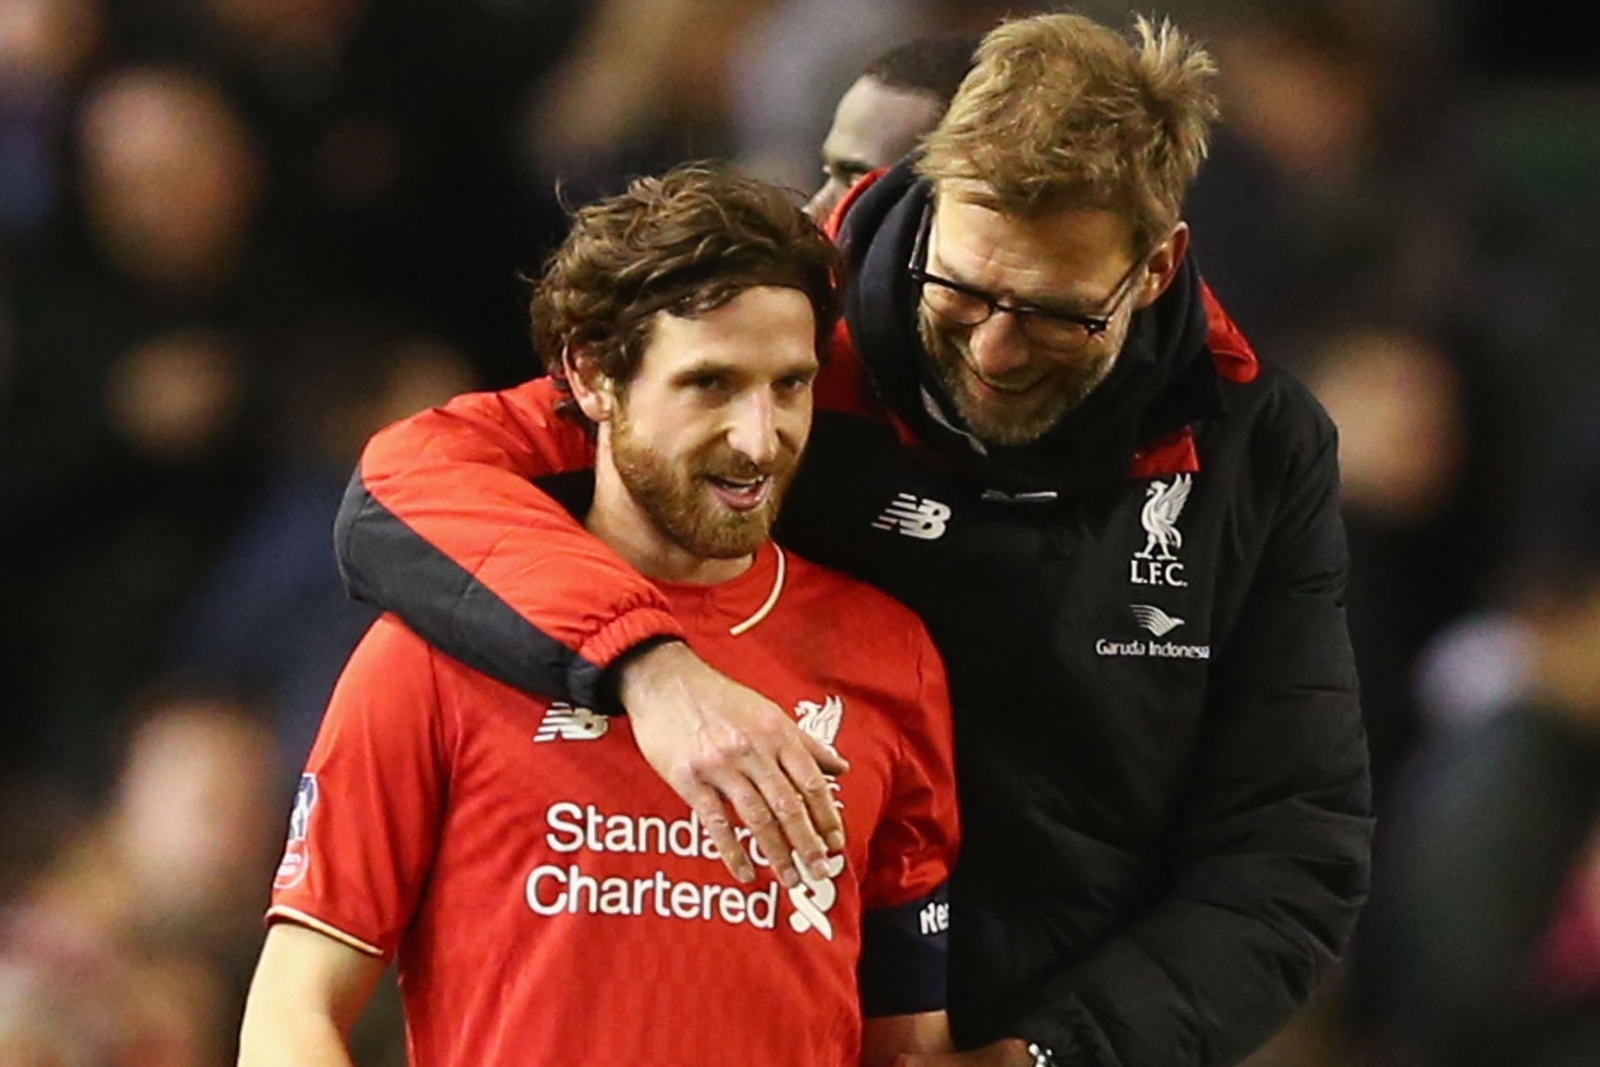 Jurgen Klopp and Joe Allen